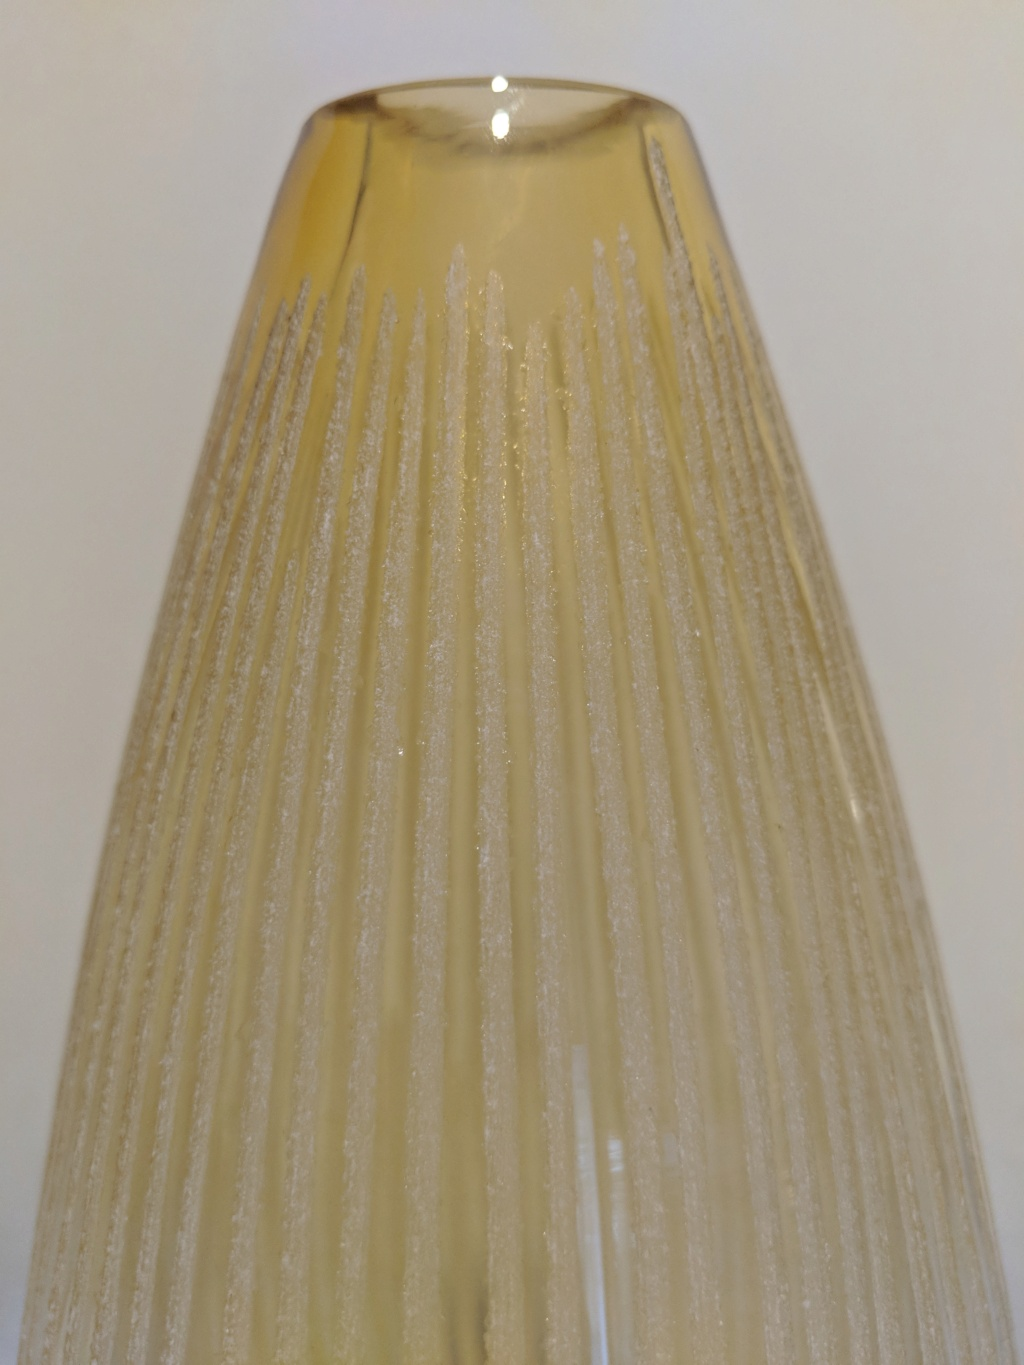 tall vase with overshot glass vertical ribs  Img_2019